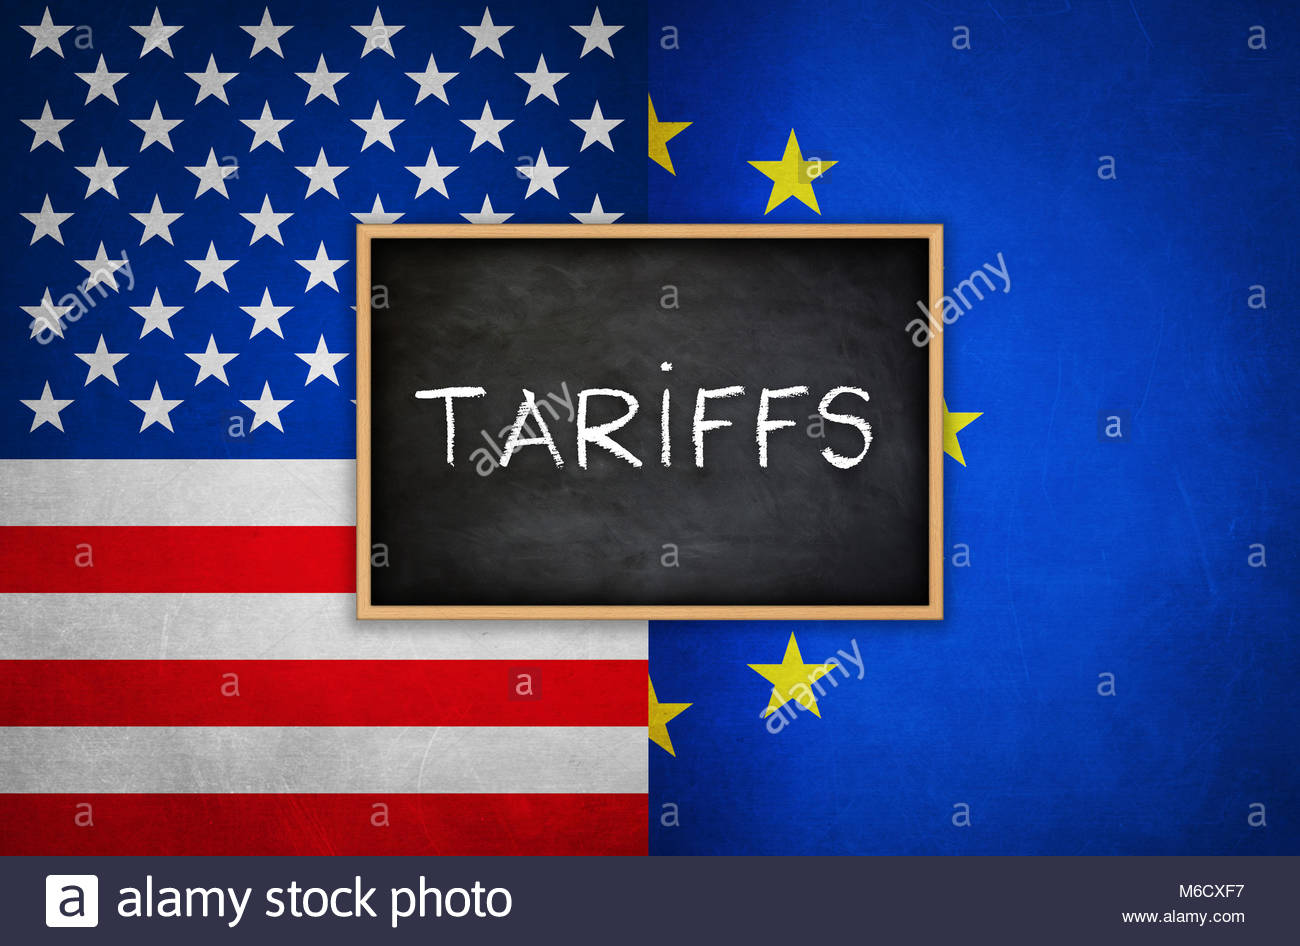 Tariffs between America and the European Union - Stock Image